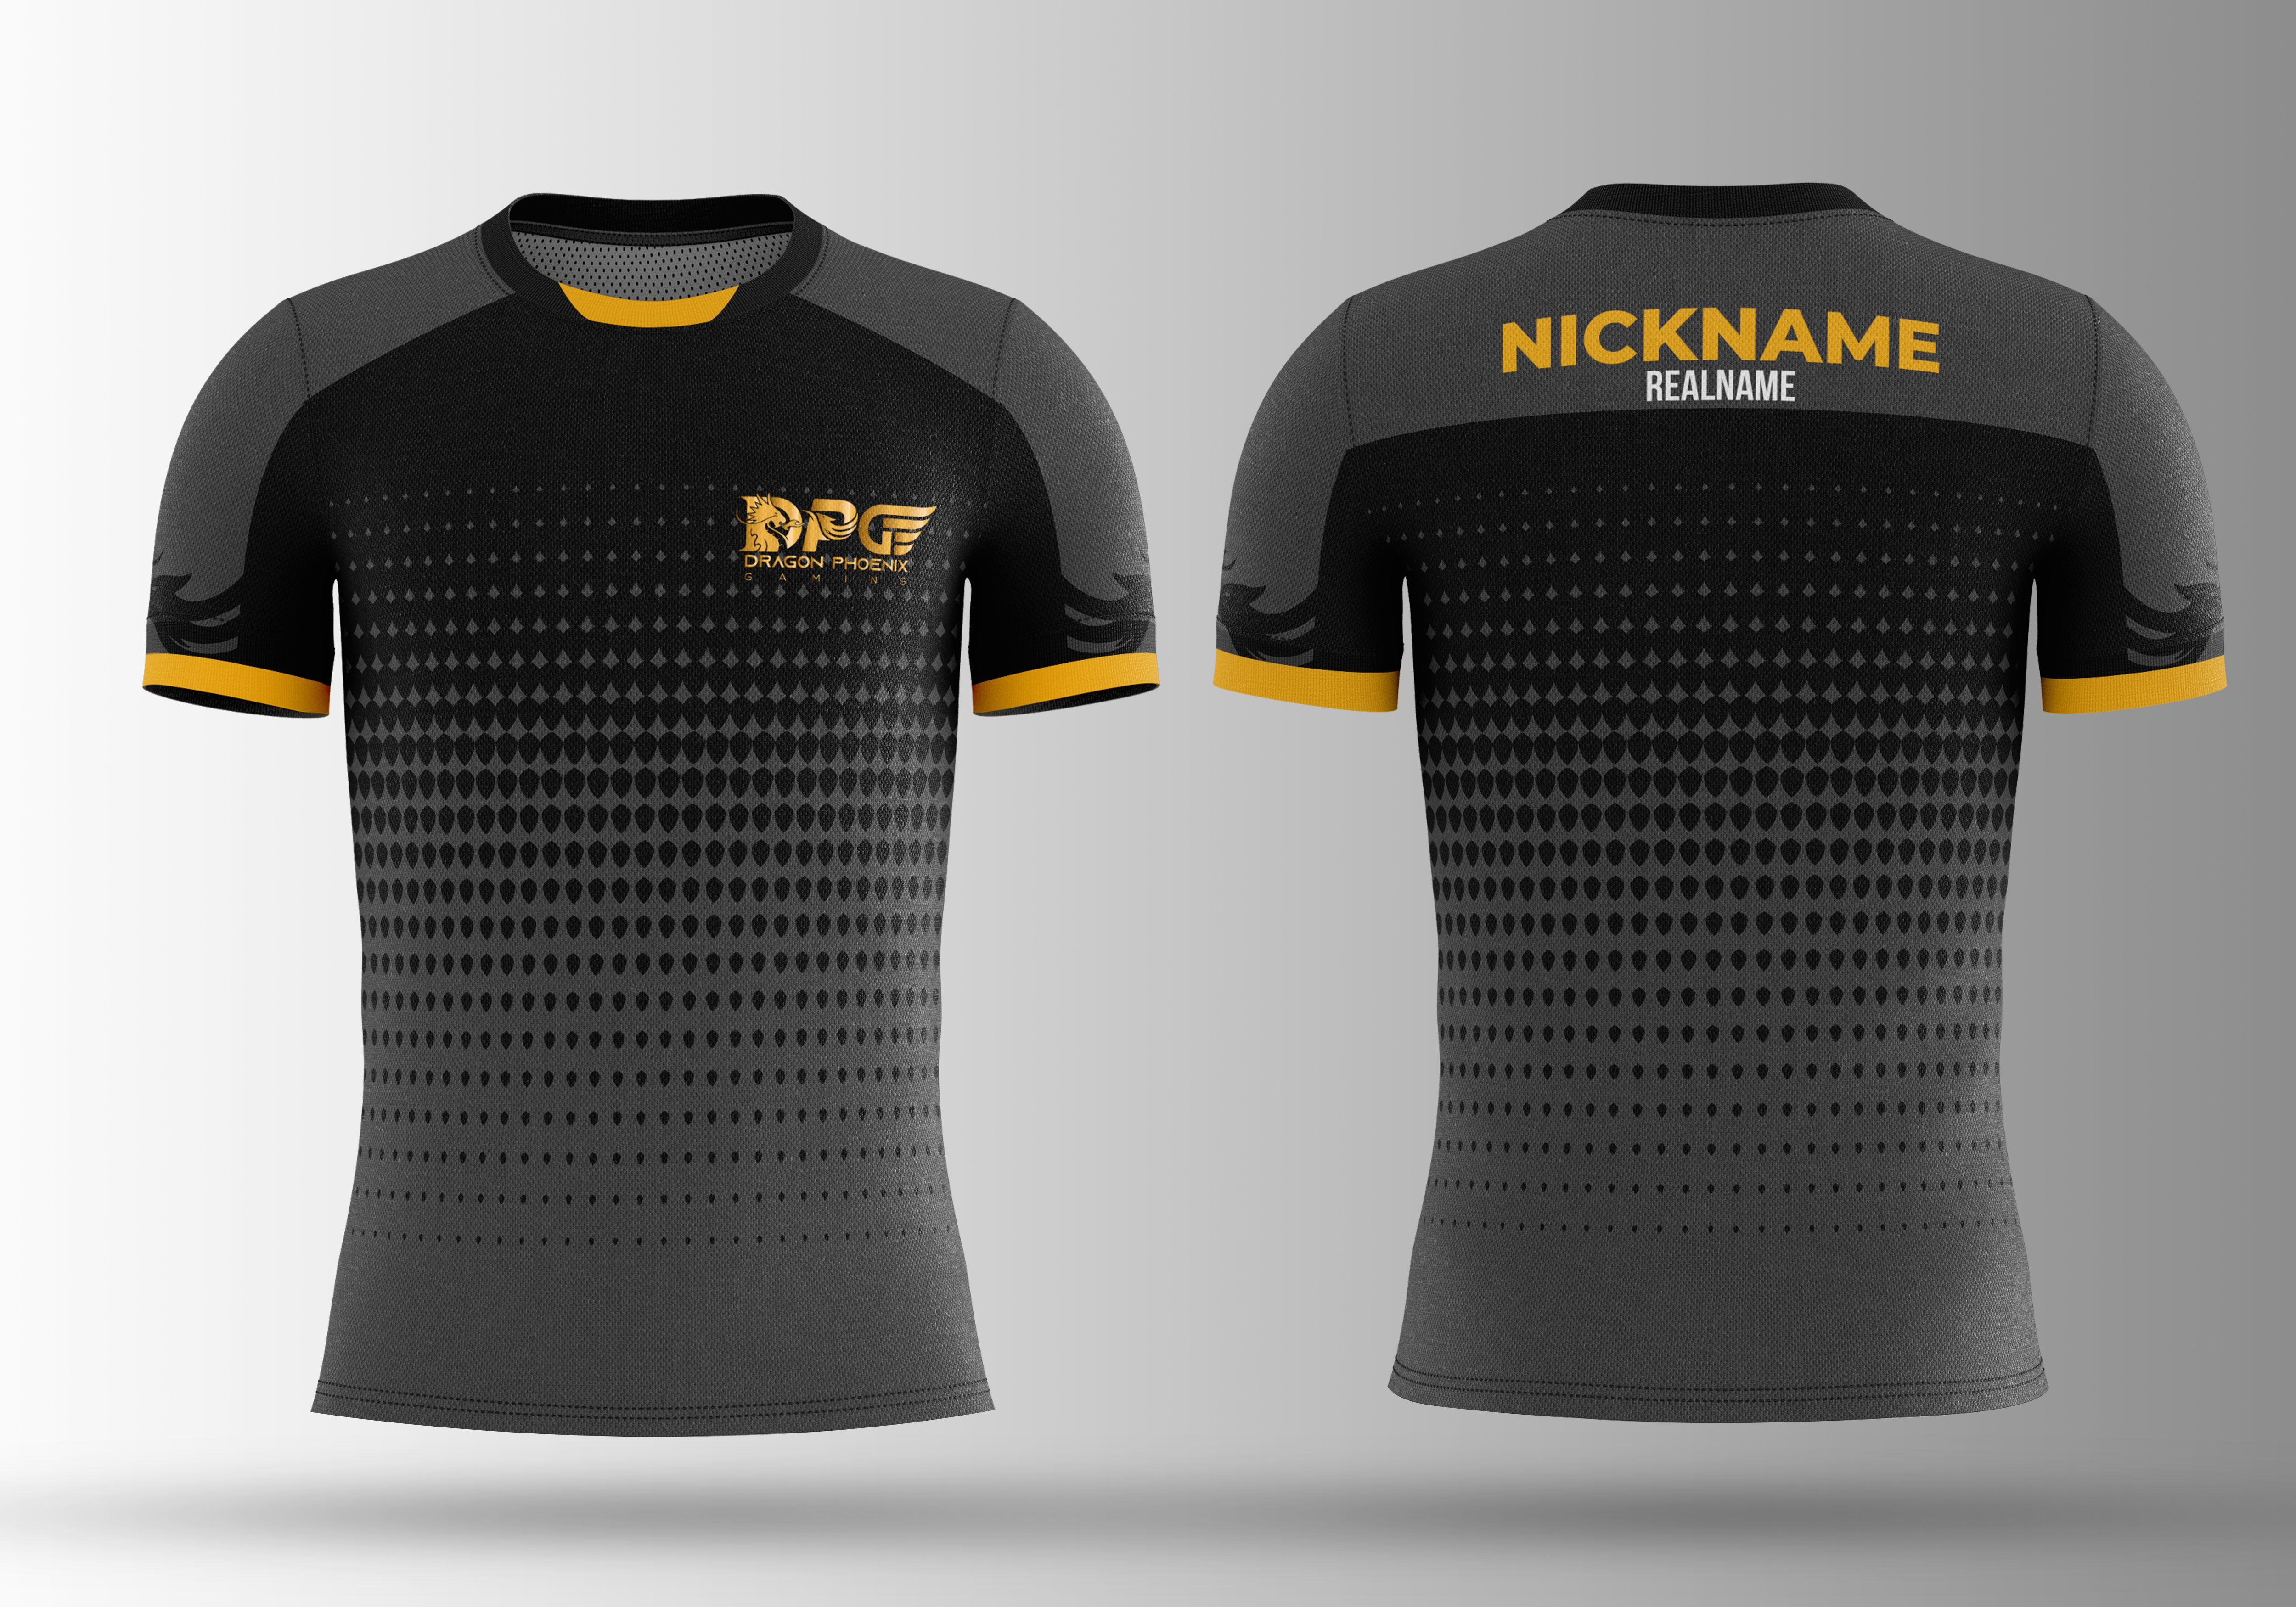 Download Under21 I Will Design Jersey For Esports Soccer Etc In 24 Hours For 10 On Fiverr Com Sport T Shirt Shirt Template Sleeves Clothing